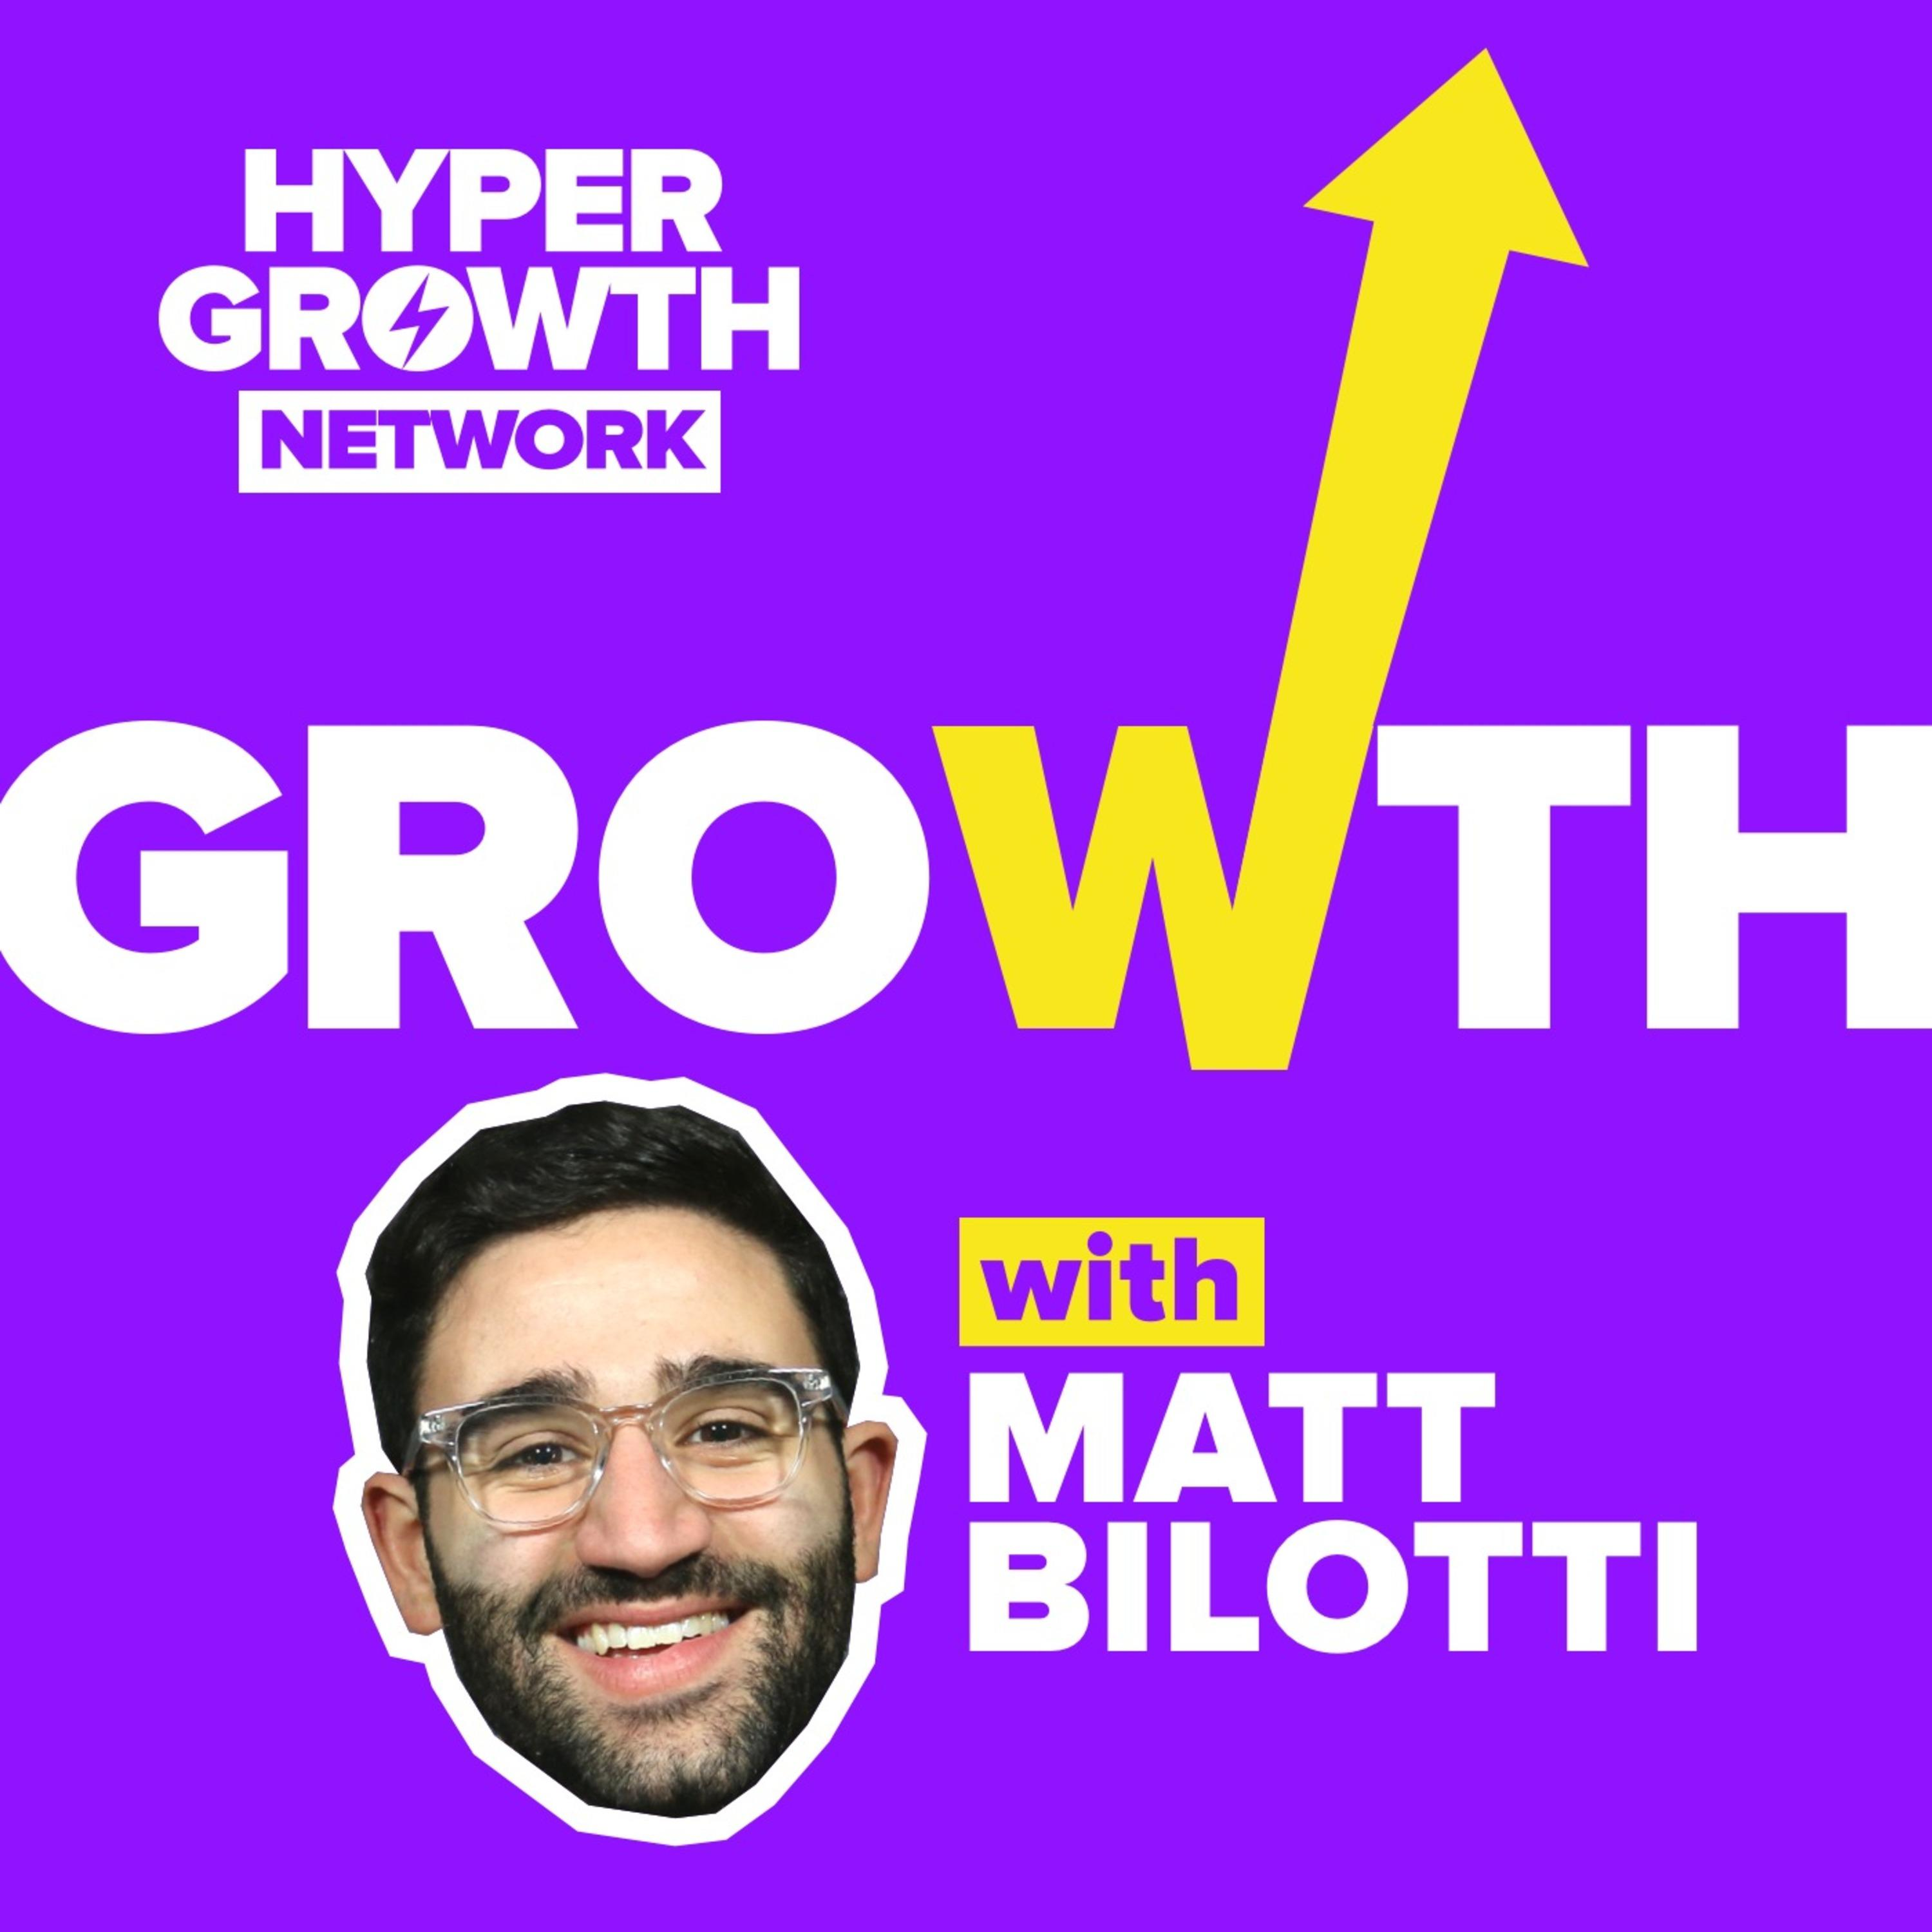 When & How to Make Your First Growth Hire (With Drift's Guillaume Cabane)